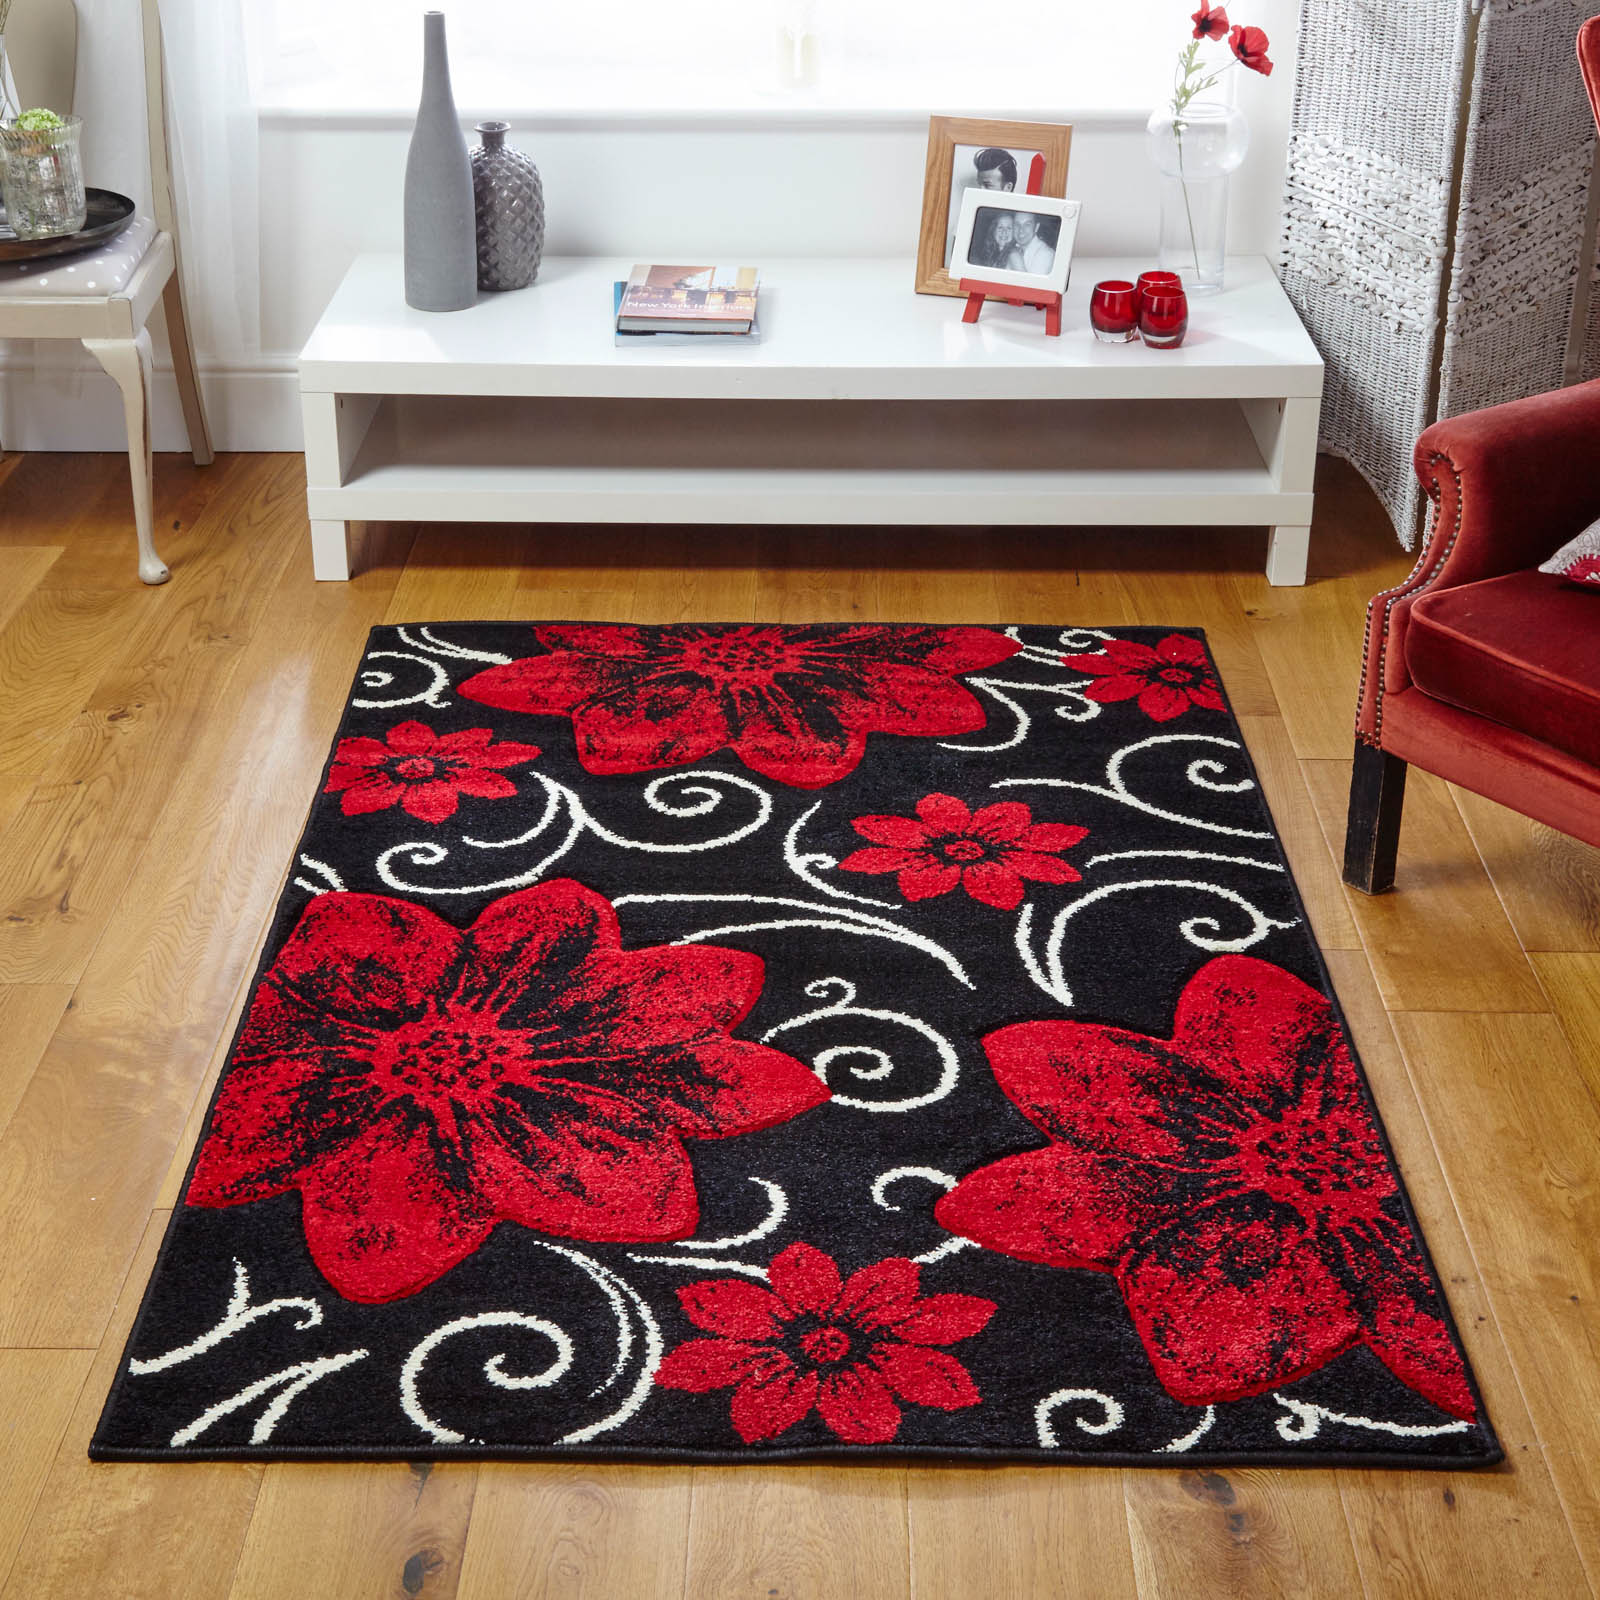 Viva Rugs 9748 Q in Black an Red